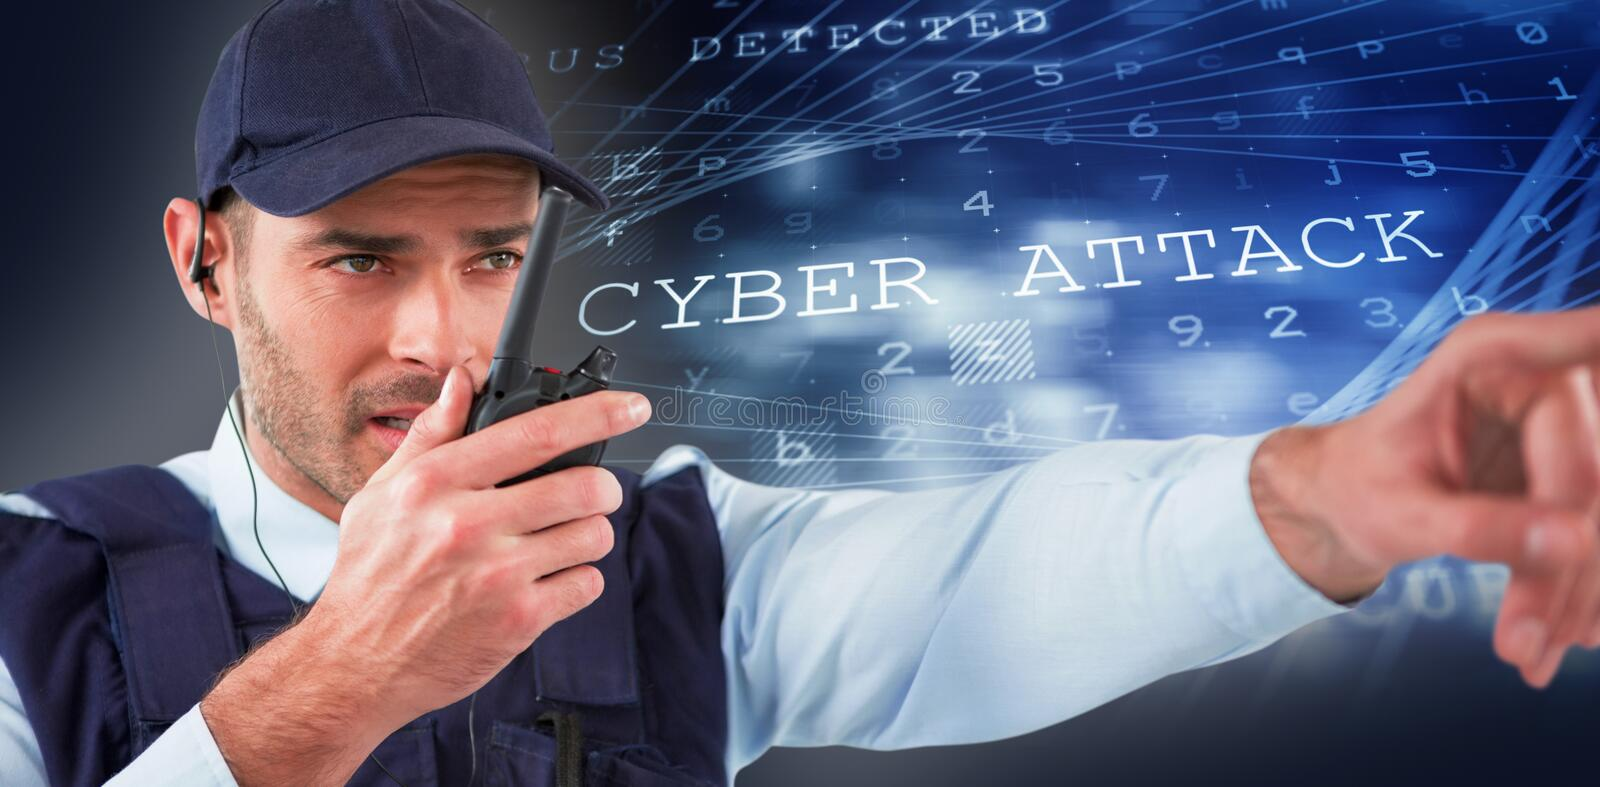 Composite image of security officer talking on walkie talkie while pointing away. Security officer talking on walkie talkie while pointing away against virus stock photos